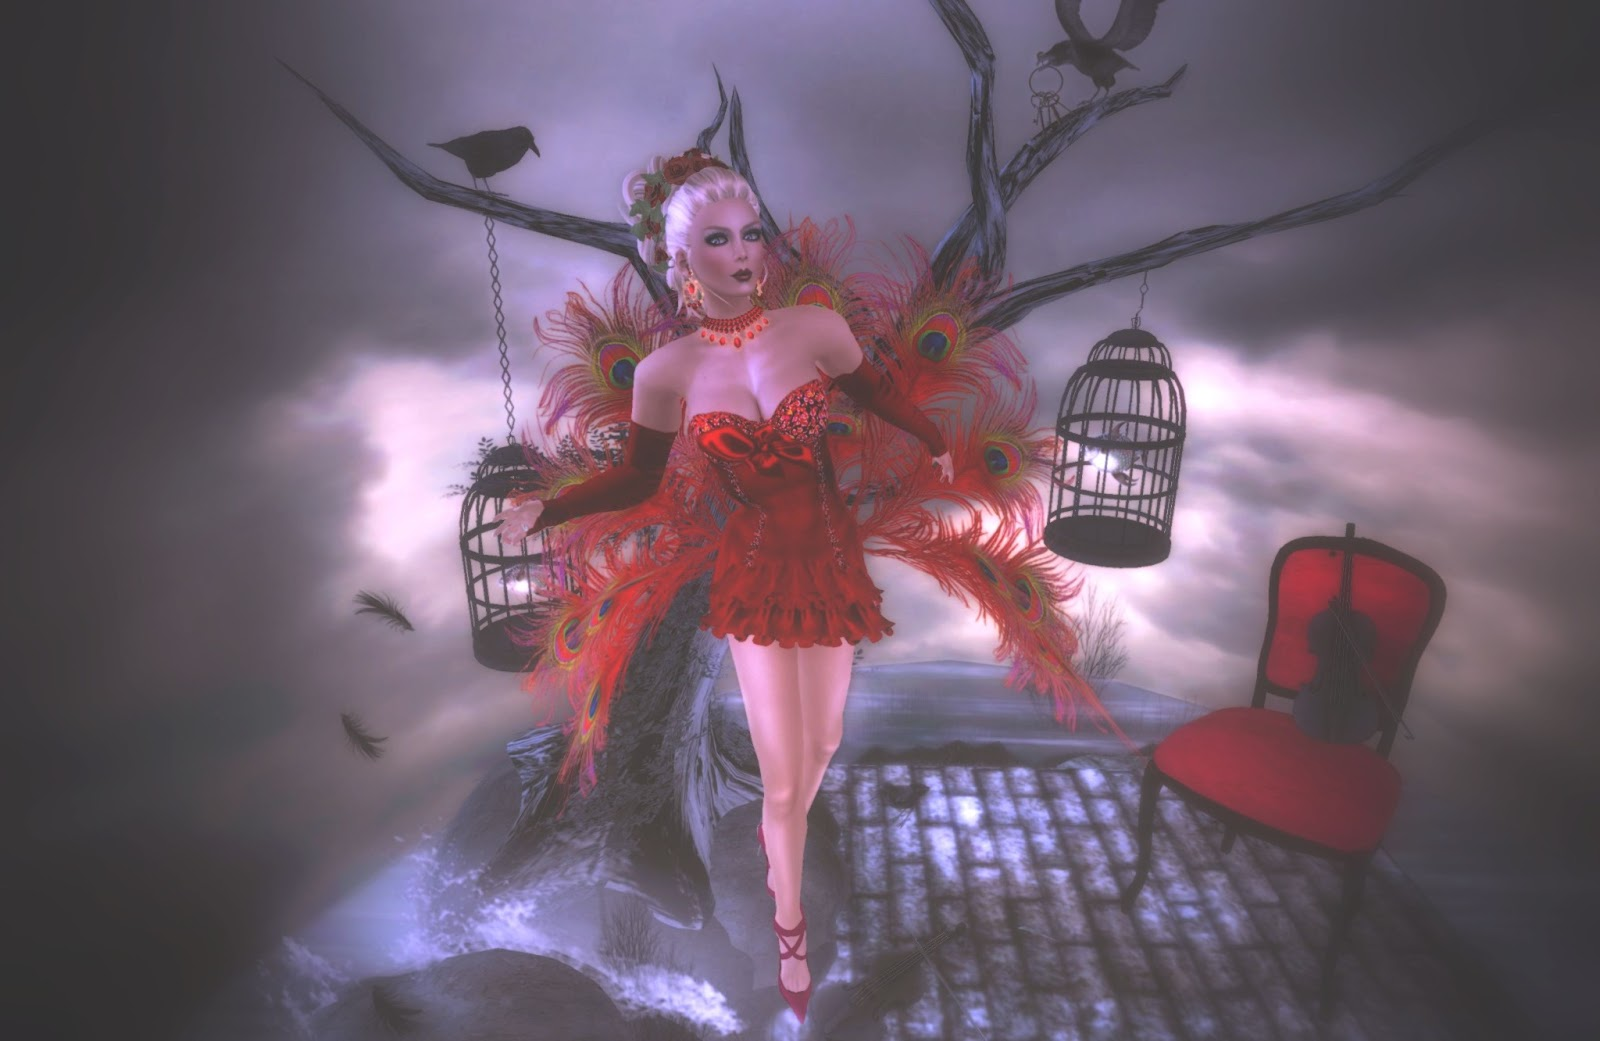 New From Sona Valentines Day Fantasy Dress Poses From PosESion. 1600 x 1041.Valentine's Day Photos For Son